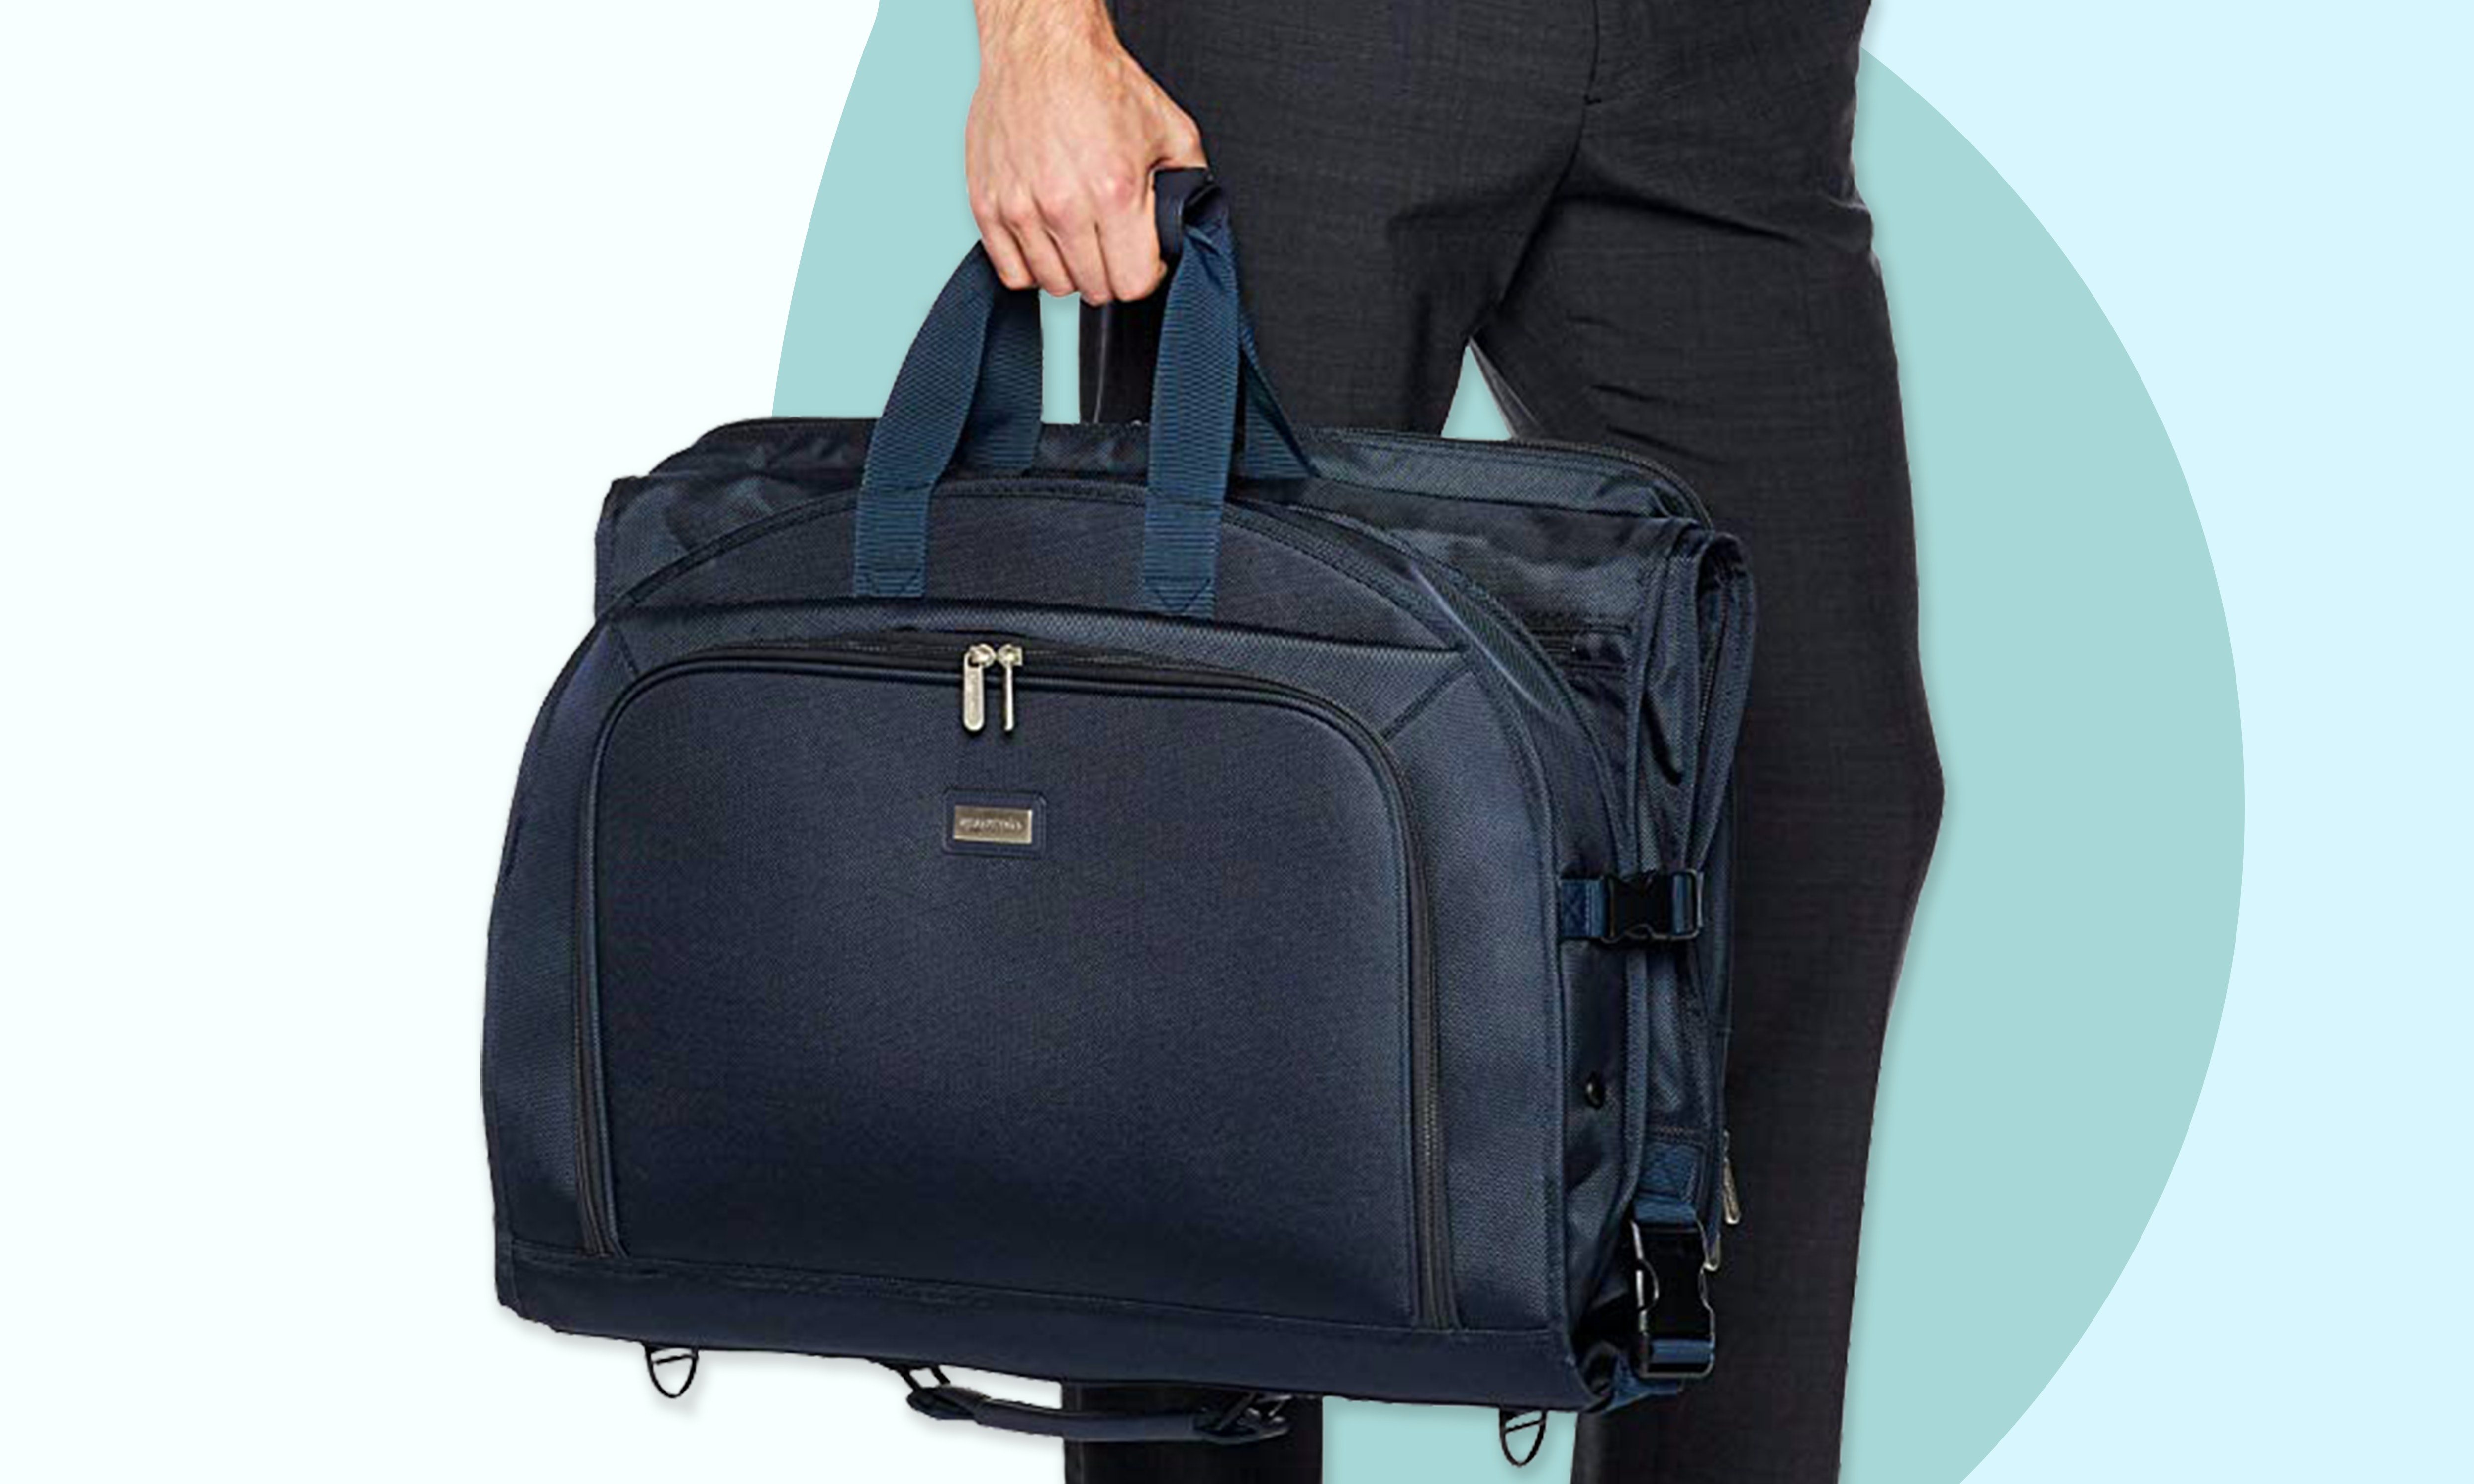 1b93b1201d5f The 4 best garment bags for travel